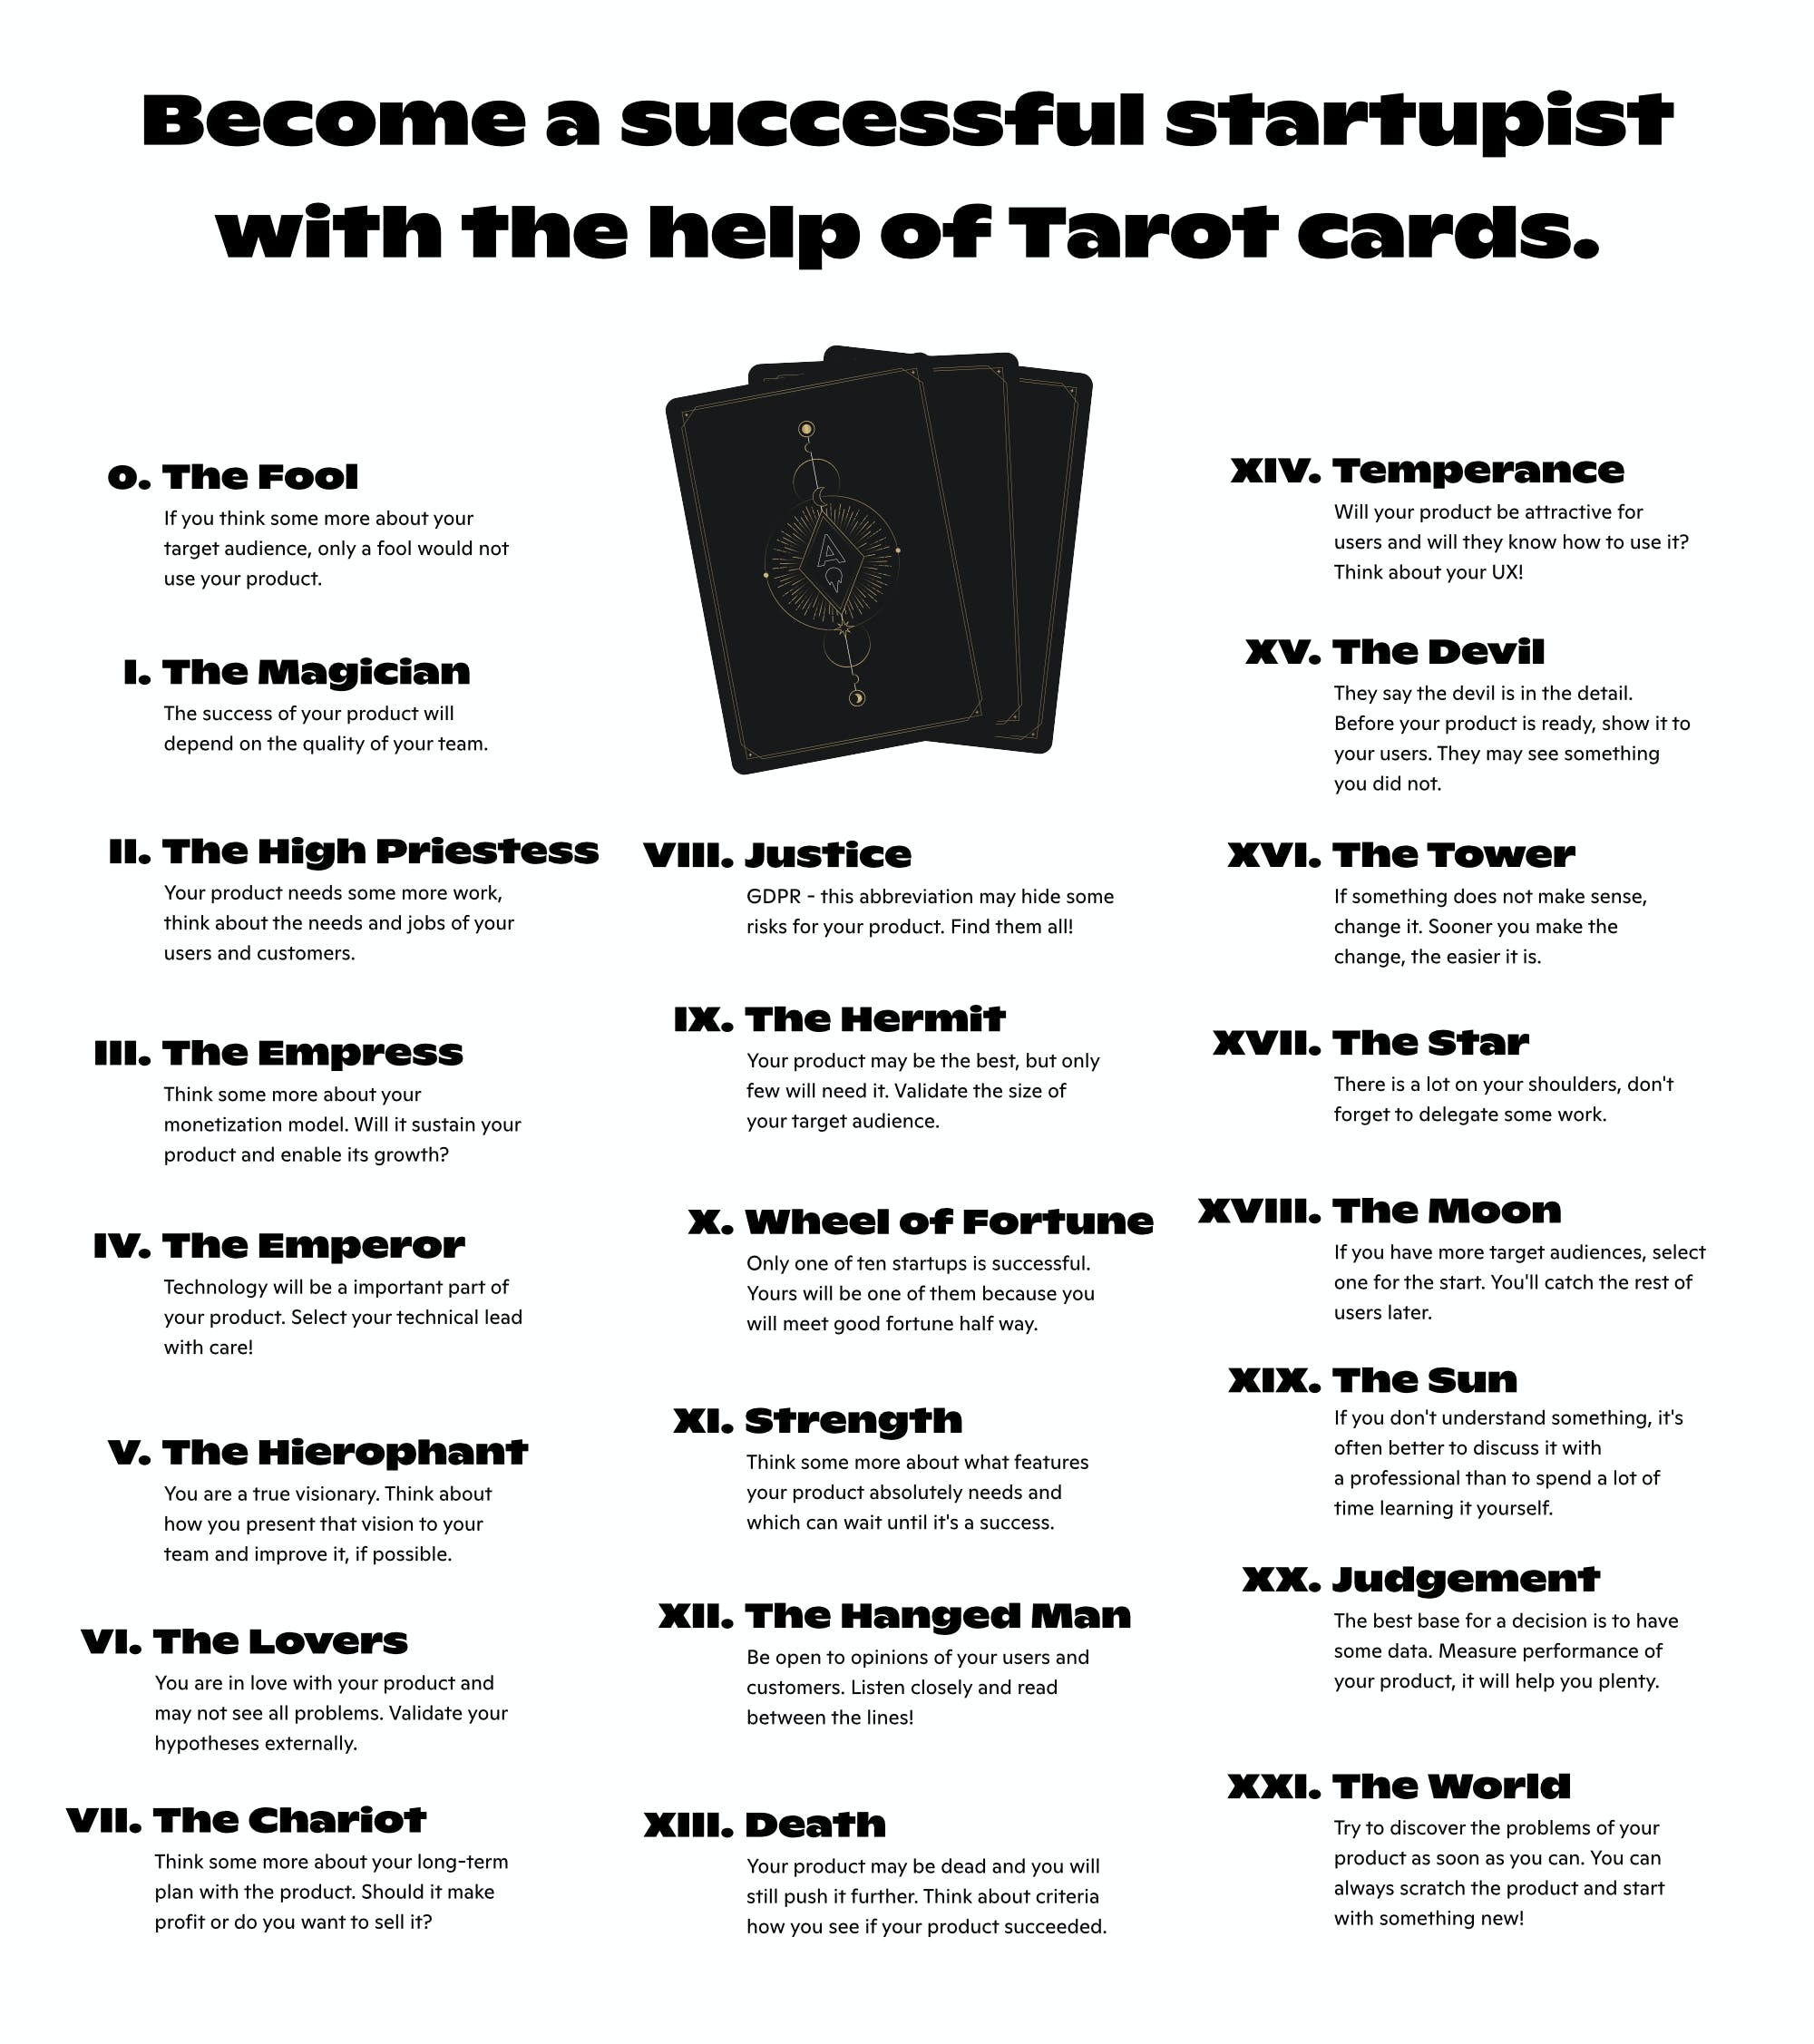 Shuffle the deck of tator cards and place them on the table one at a time. Read each new card's interpretation and muse about it. Continue until you have laid out the entire deck.